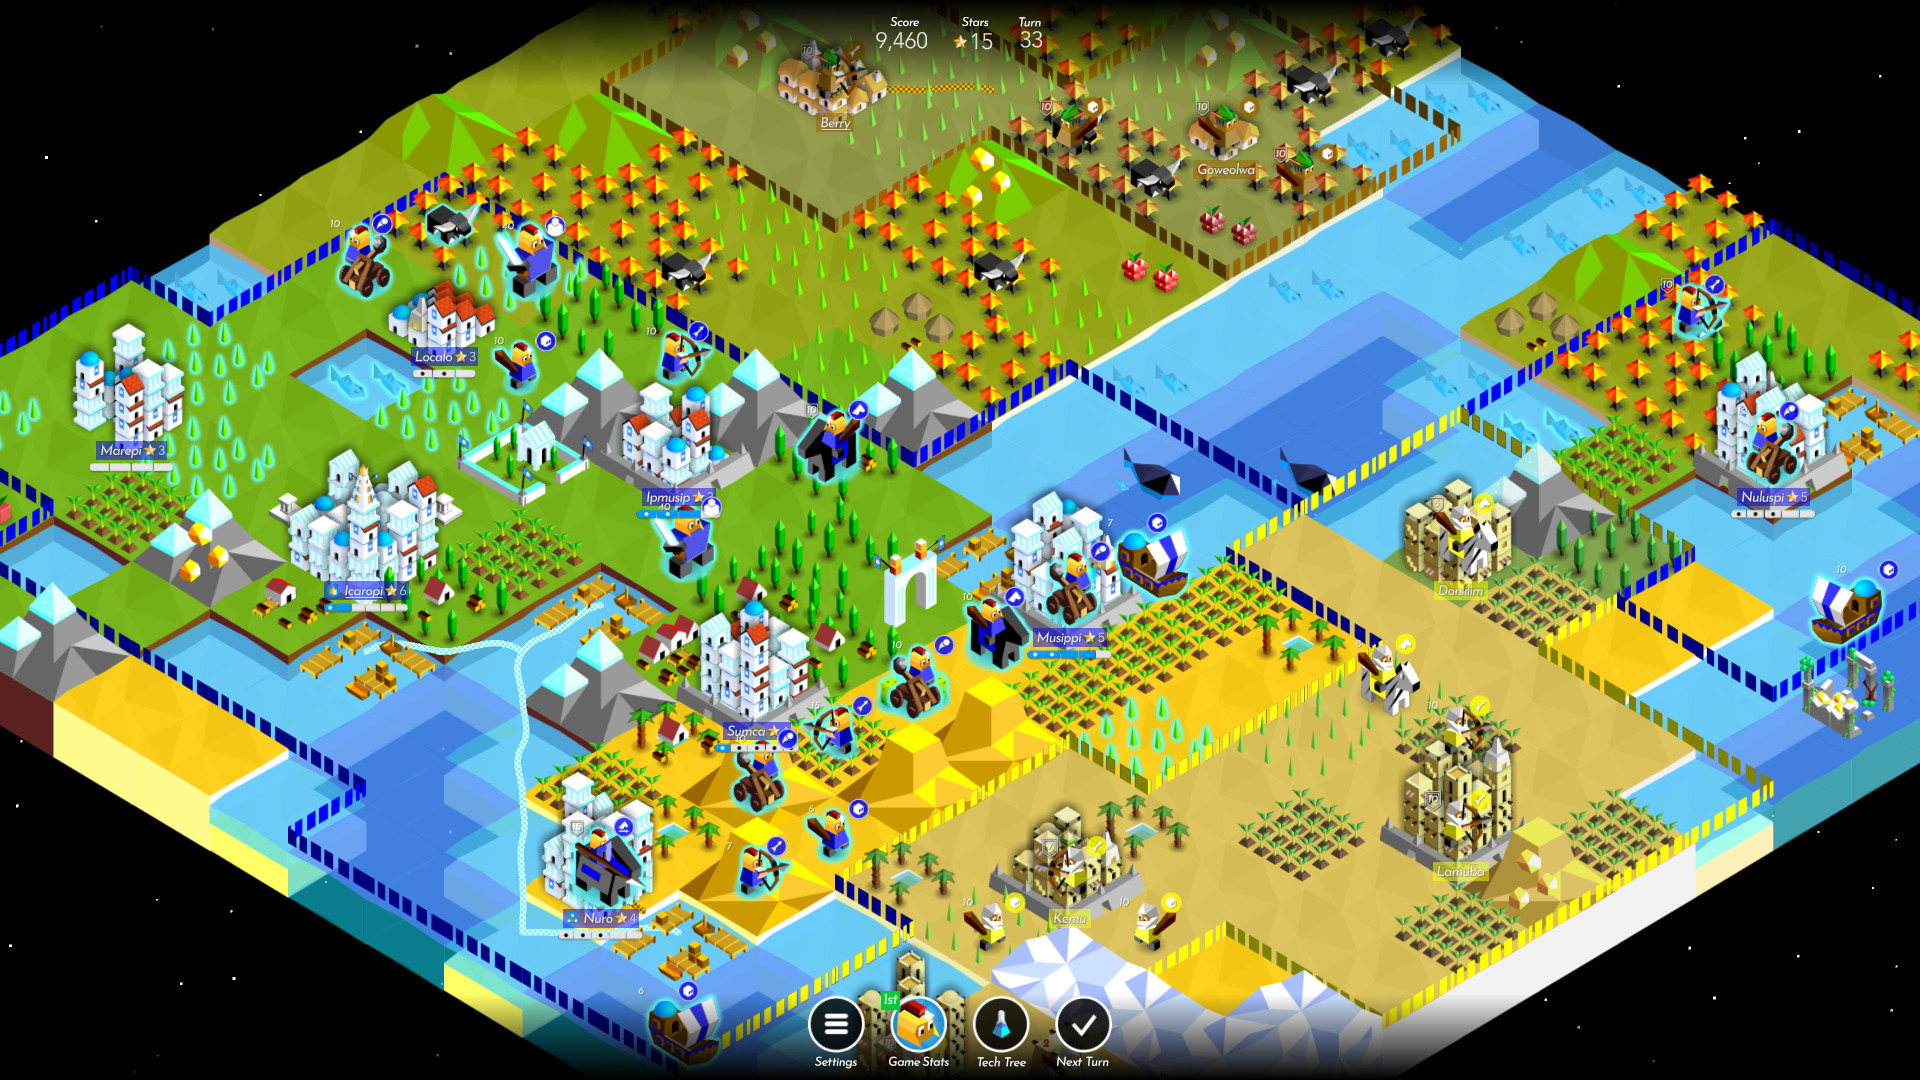 Award winning strategy game The Battle of Polytopia is now available on the Linux PC.